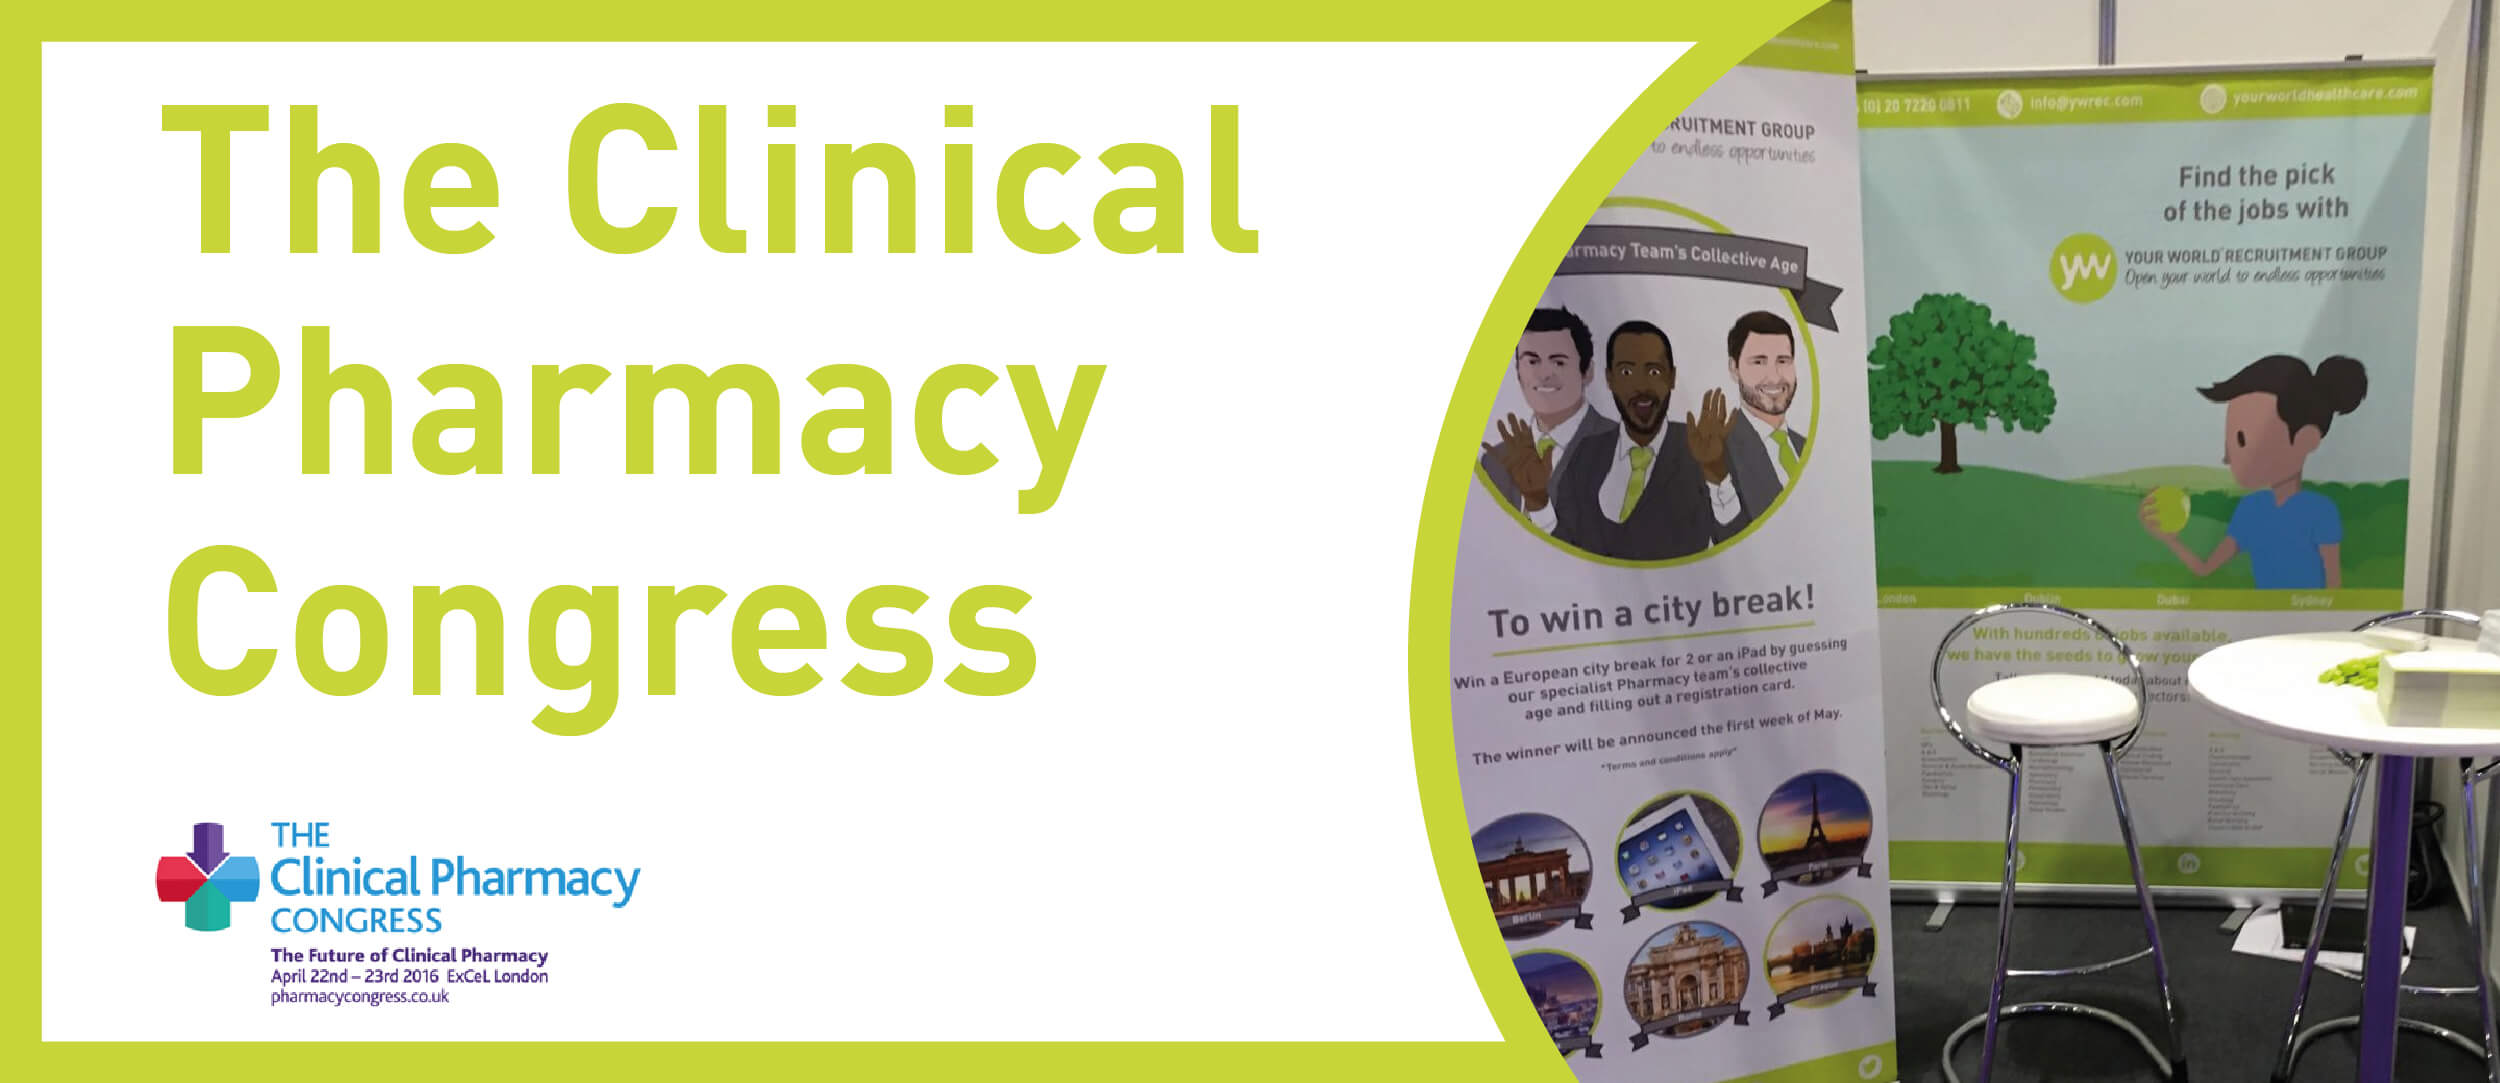 Clinical Pharmacy Congress - The Recap